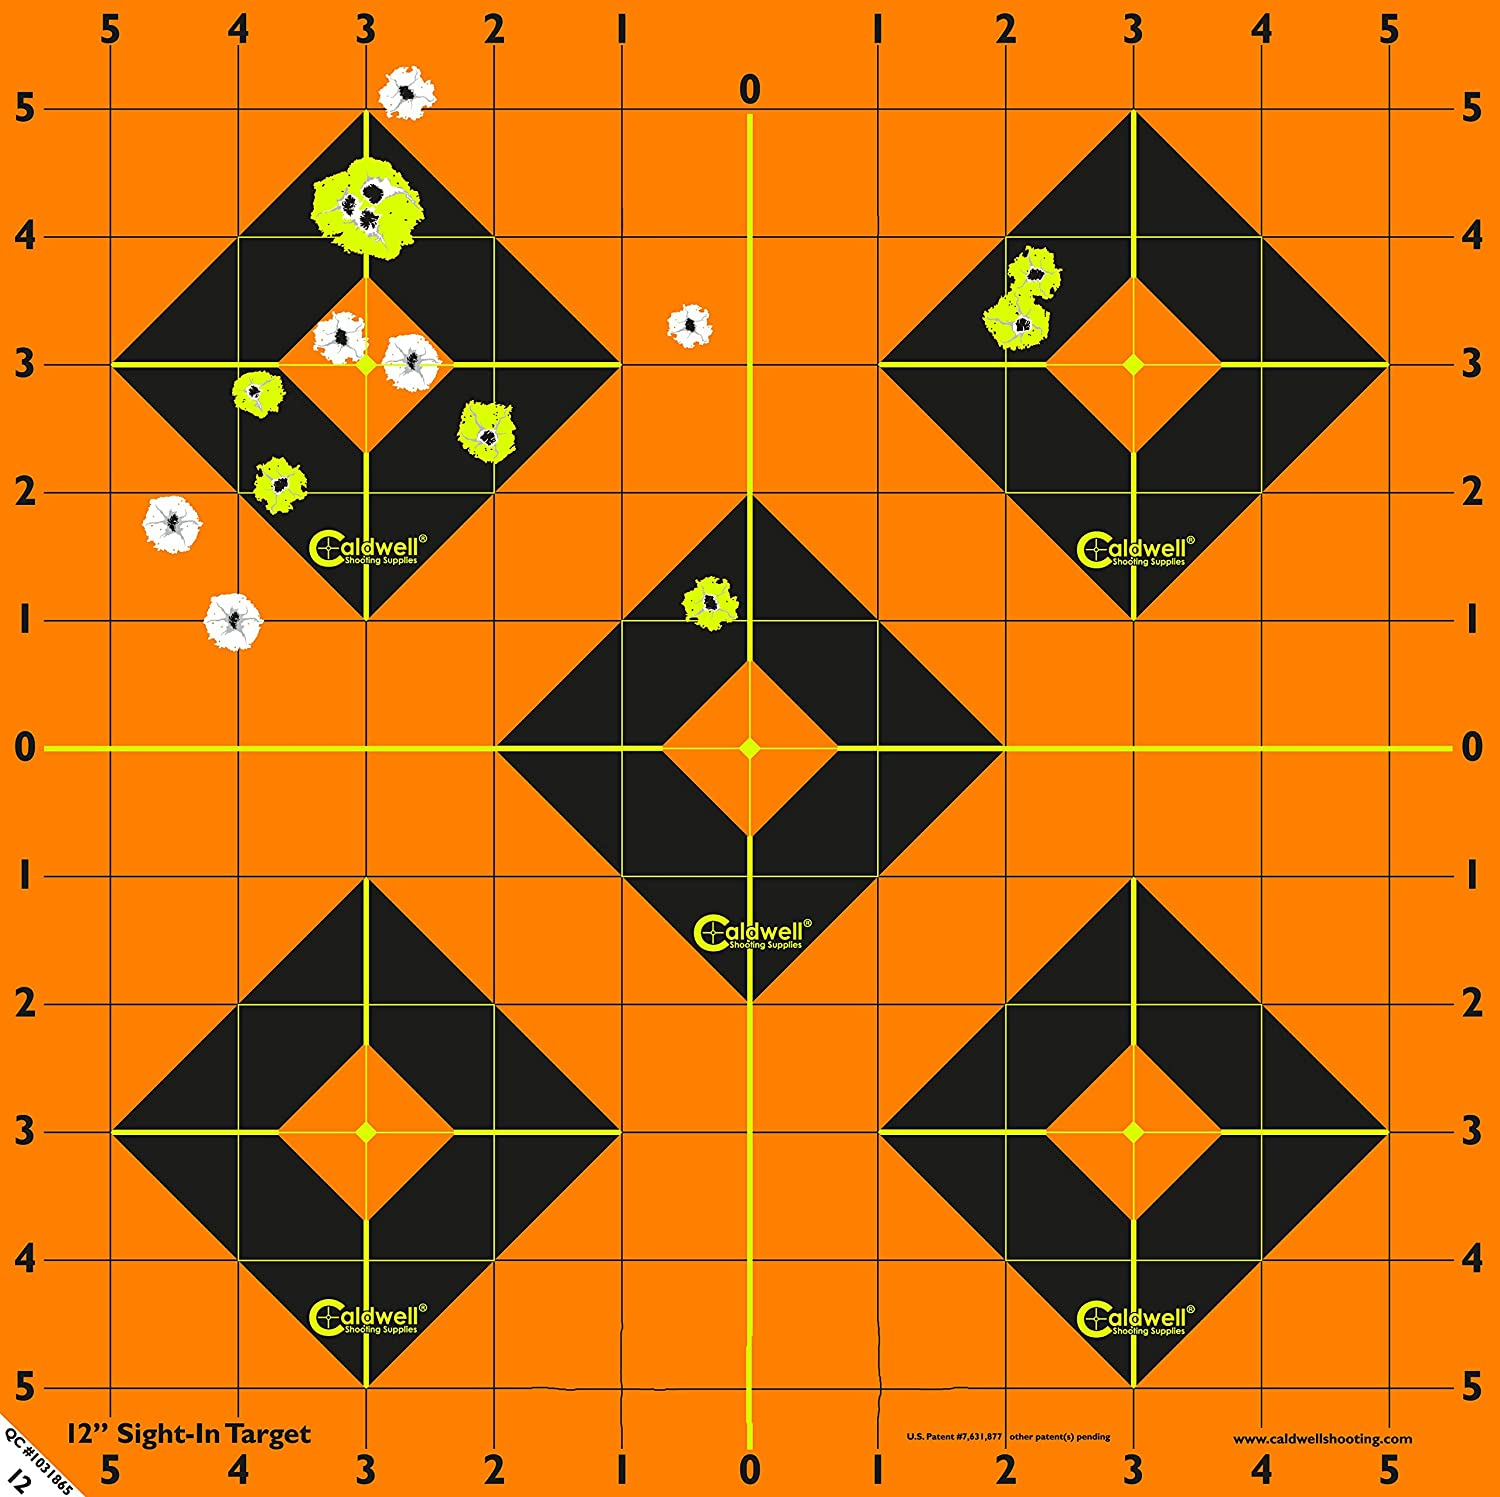 Caldwell Orange Peel 12 Inch Sight-In Targets, 5 Pack : Hunting Targets And Accessories : Sports & Outdoors